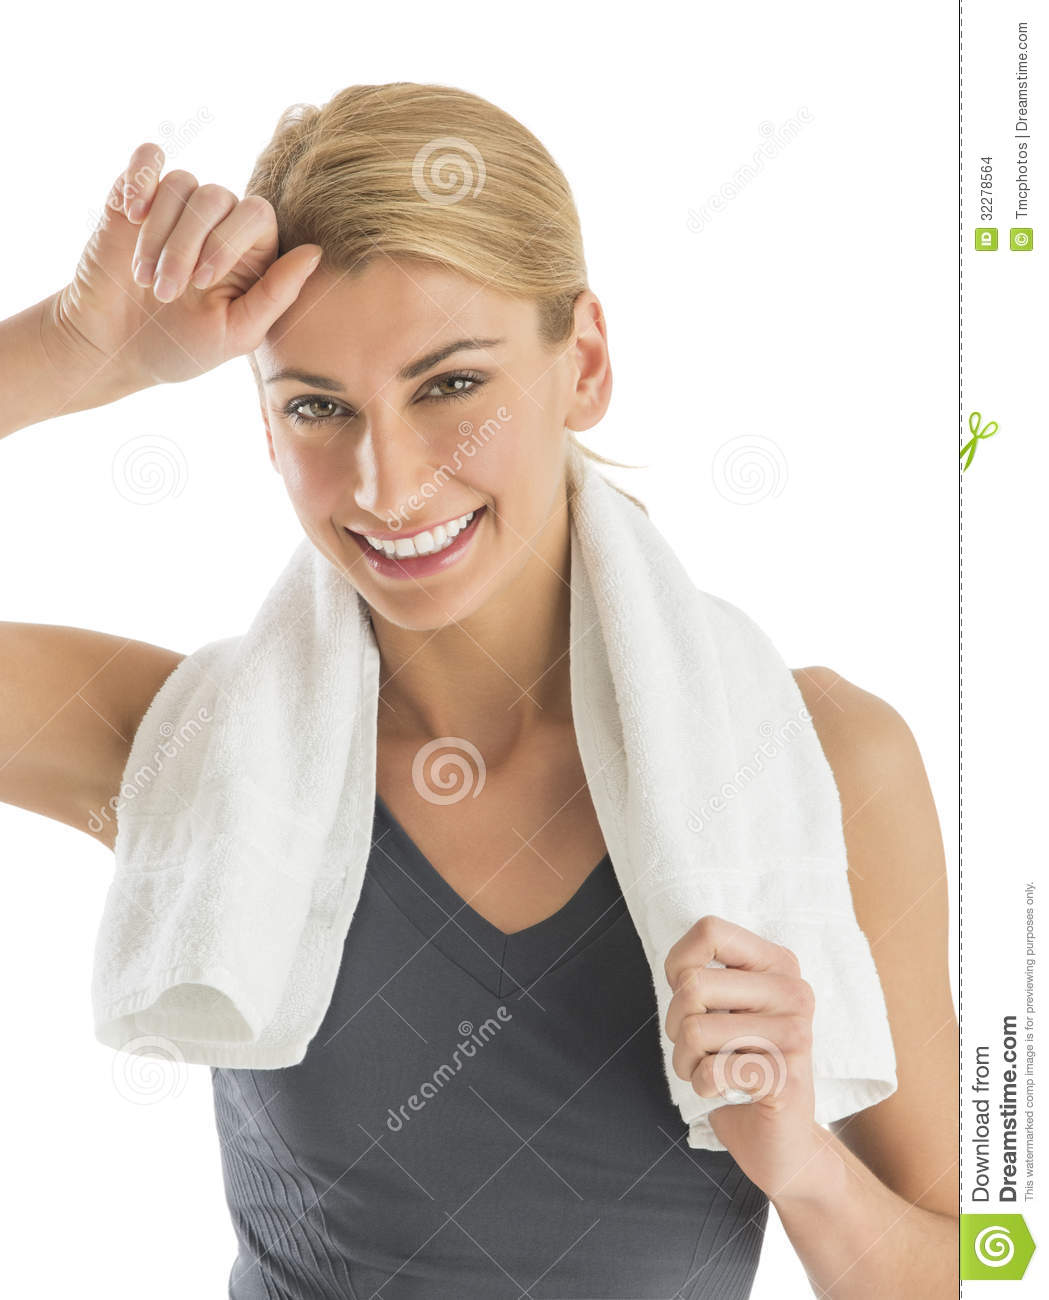 Sweat Towel On Neck: Happy Woman With Towel Around Neck Wiping Sweat Stock